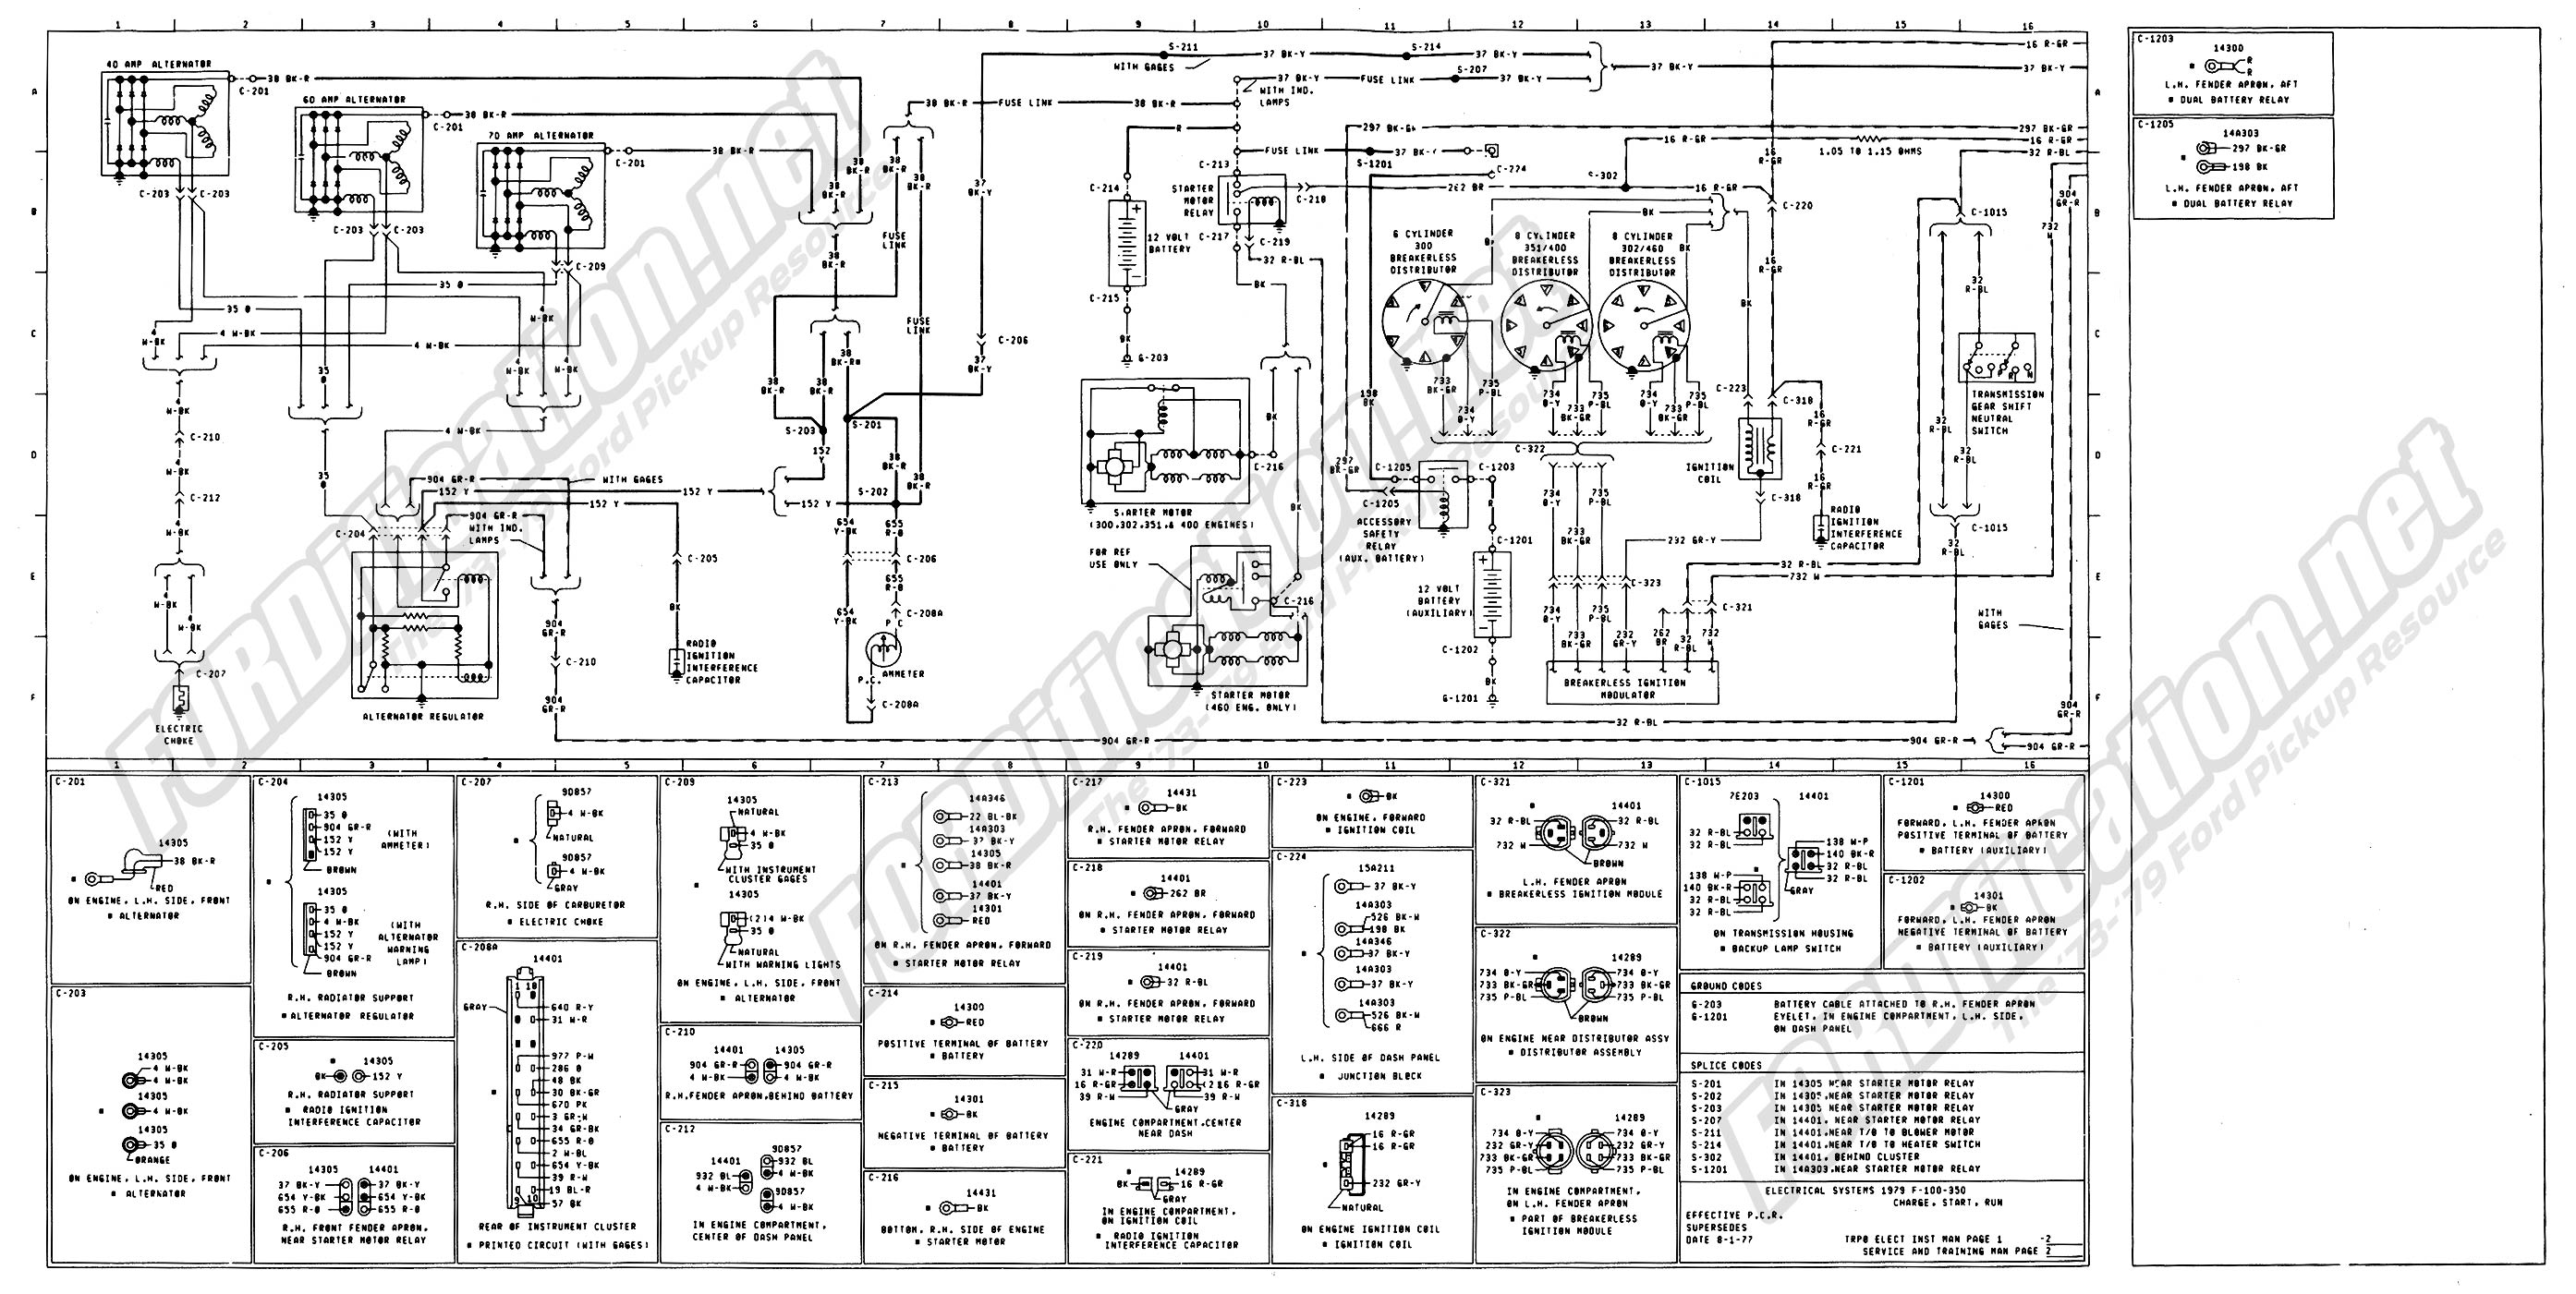 wiring_79master_2of9 1973 1979 ford truck wiring diagrams & schematics fordification net 1999 F150 Radio Wiring Diagram at webbmarketing.co